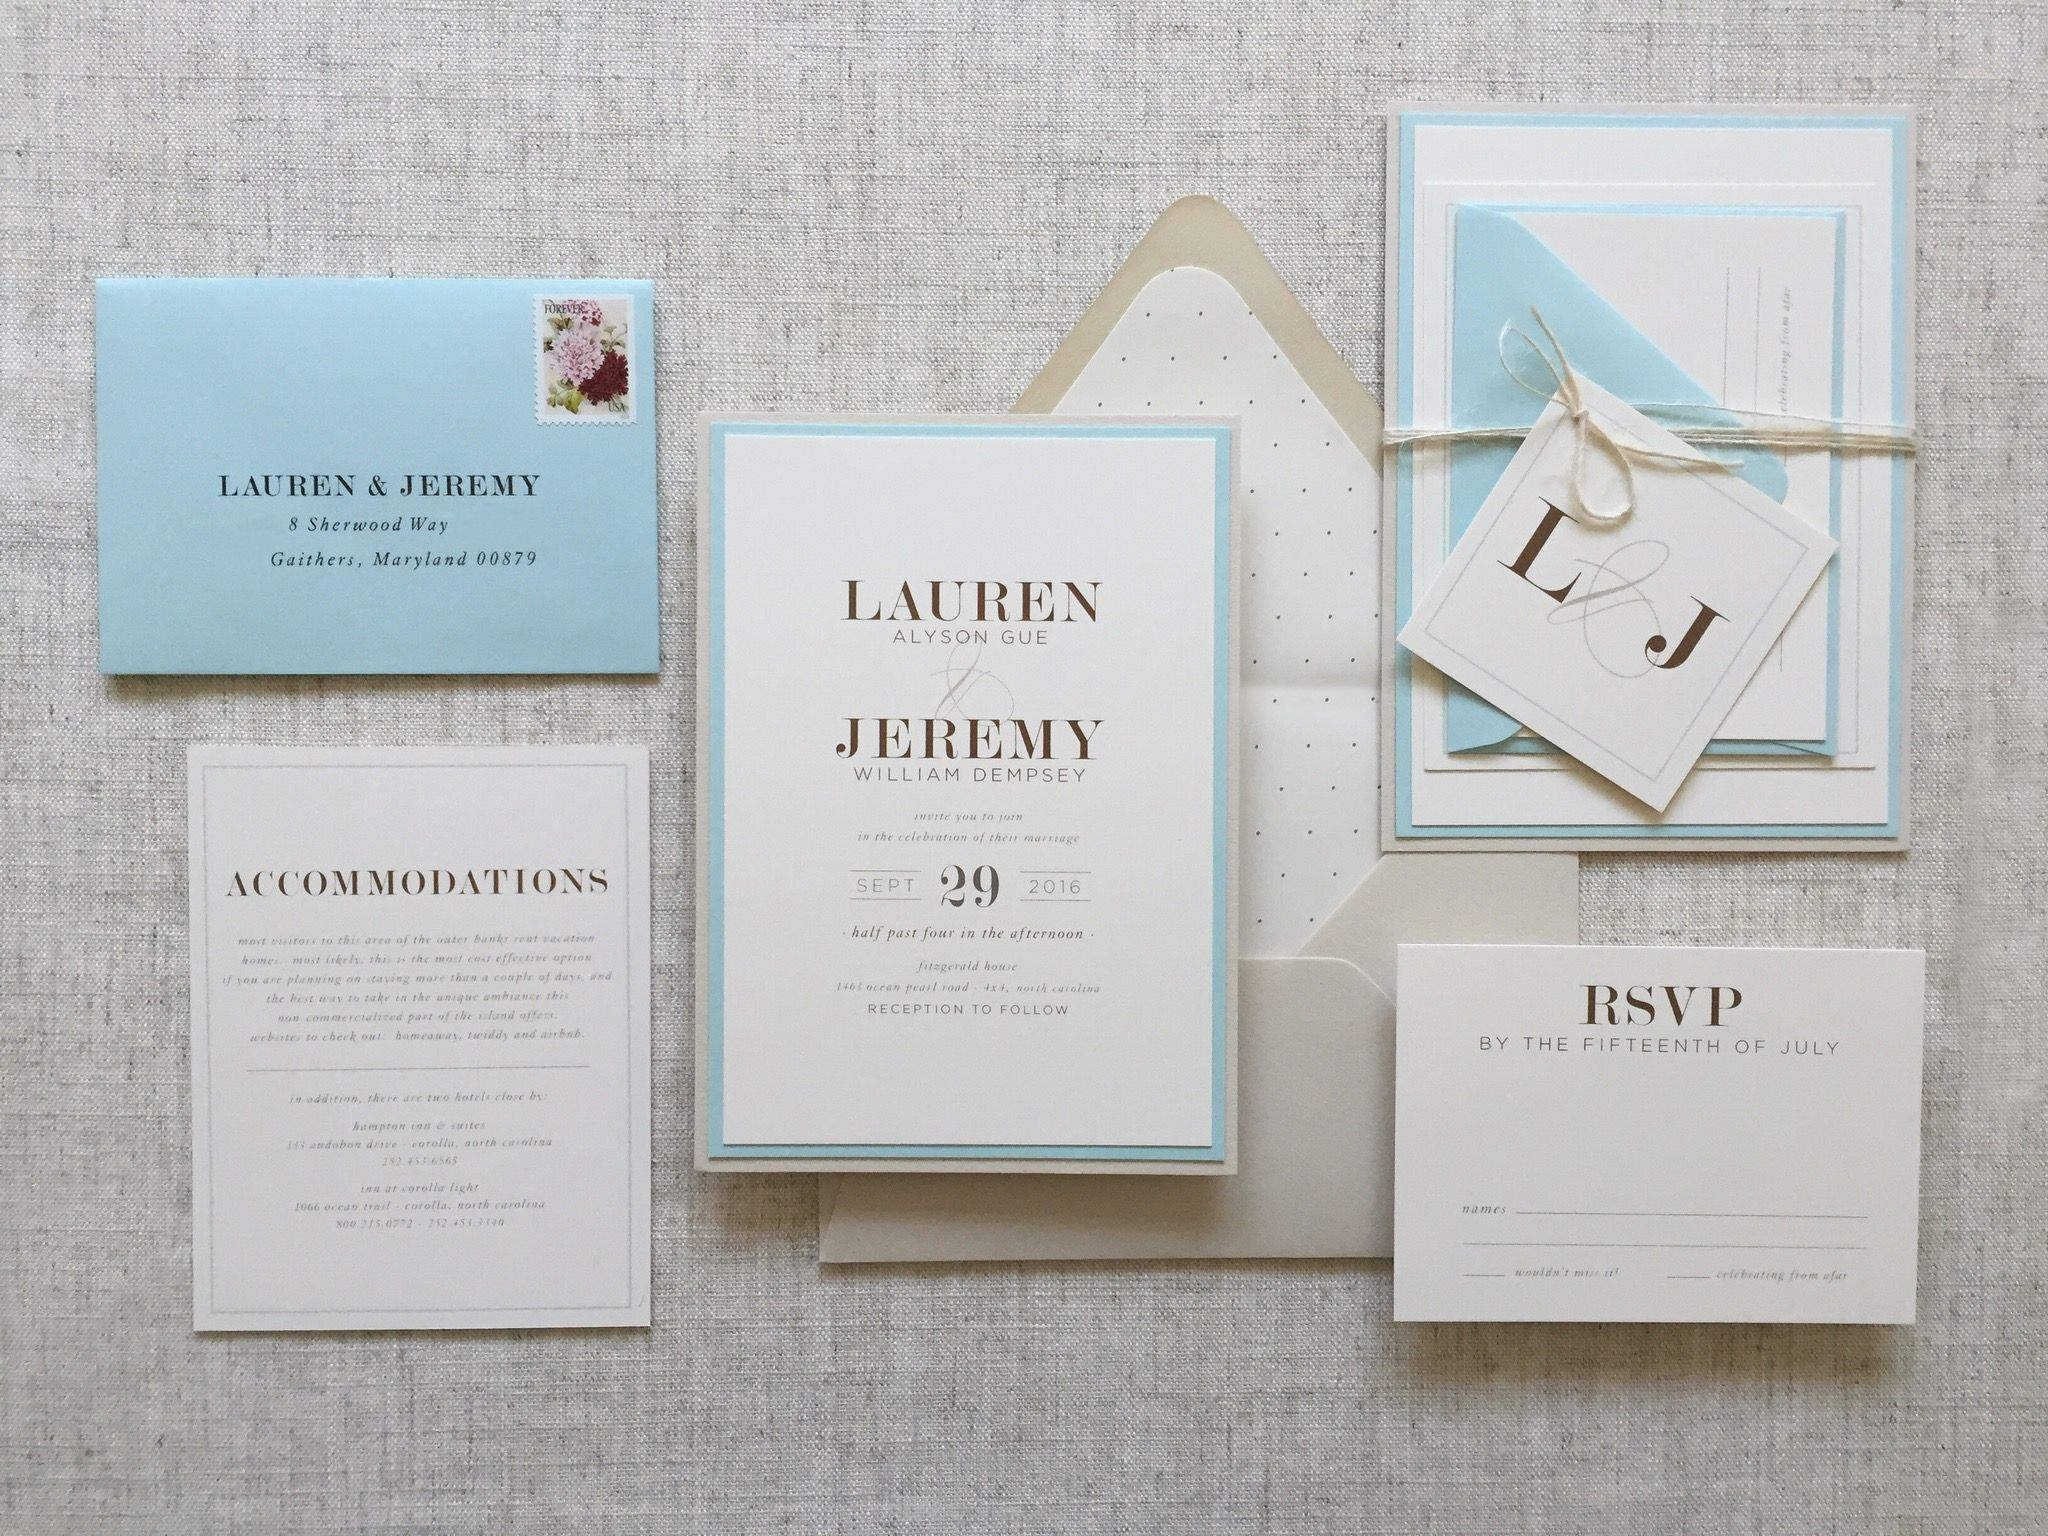 Custom Invitations u0026 Design Studio located near